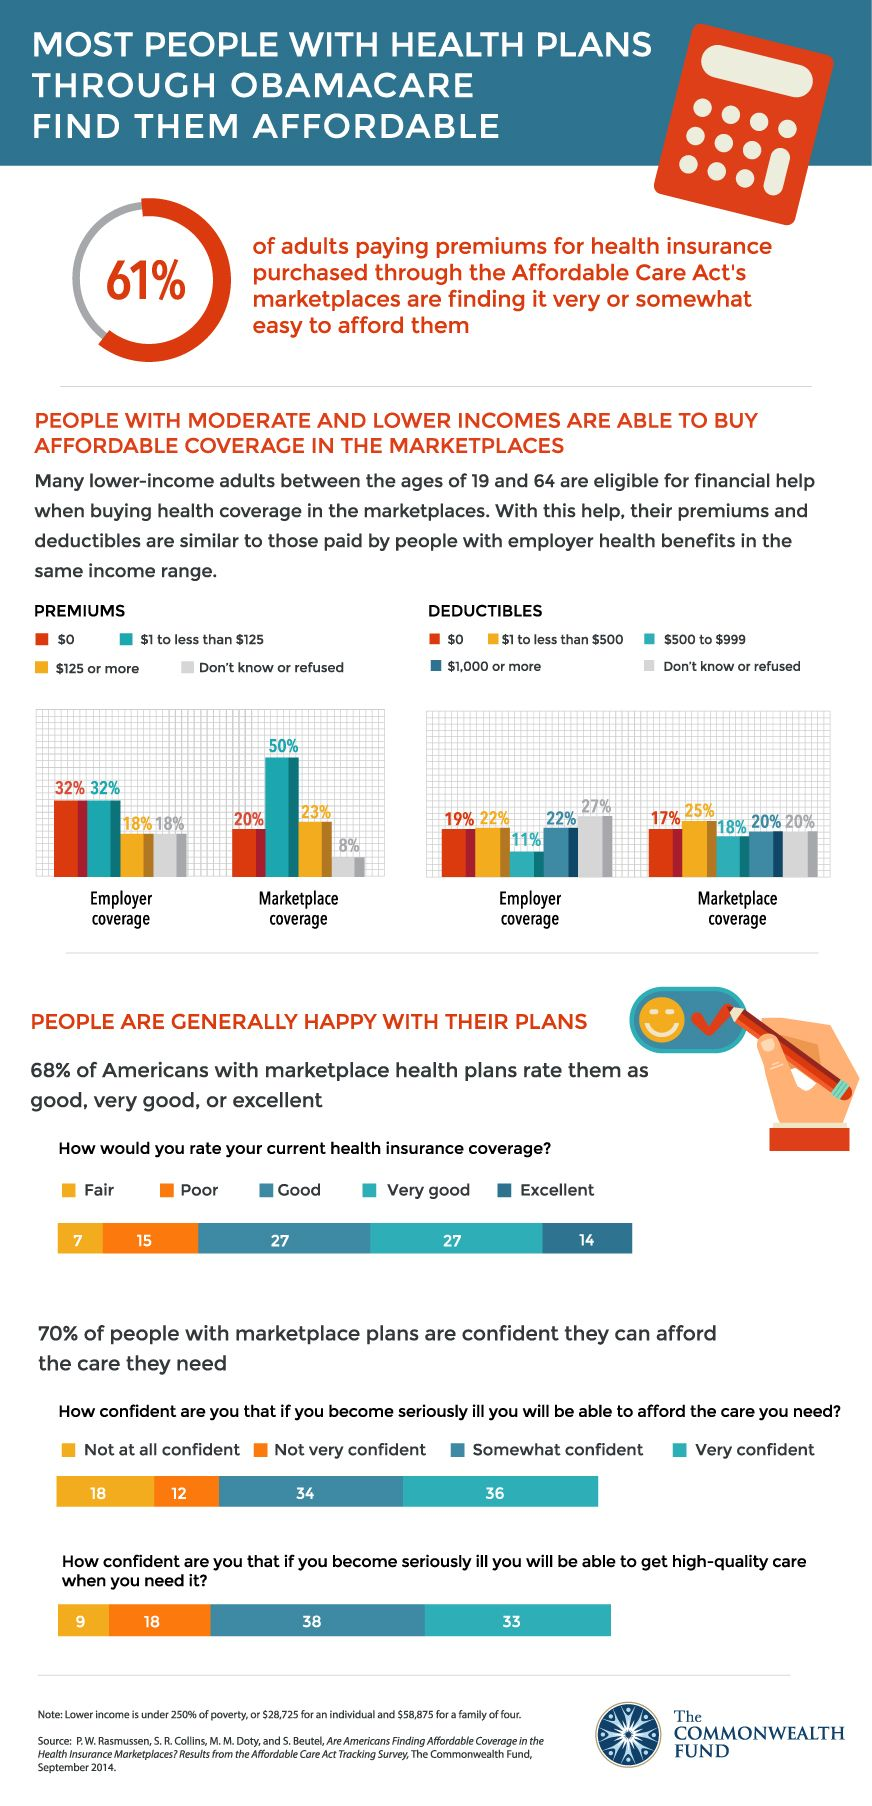 Most people with health insurance plans through Obamacare